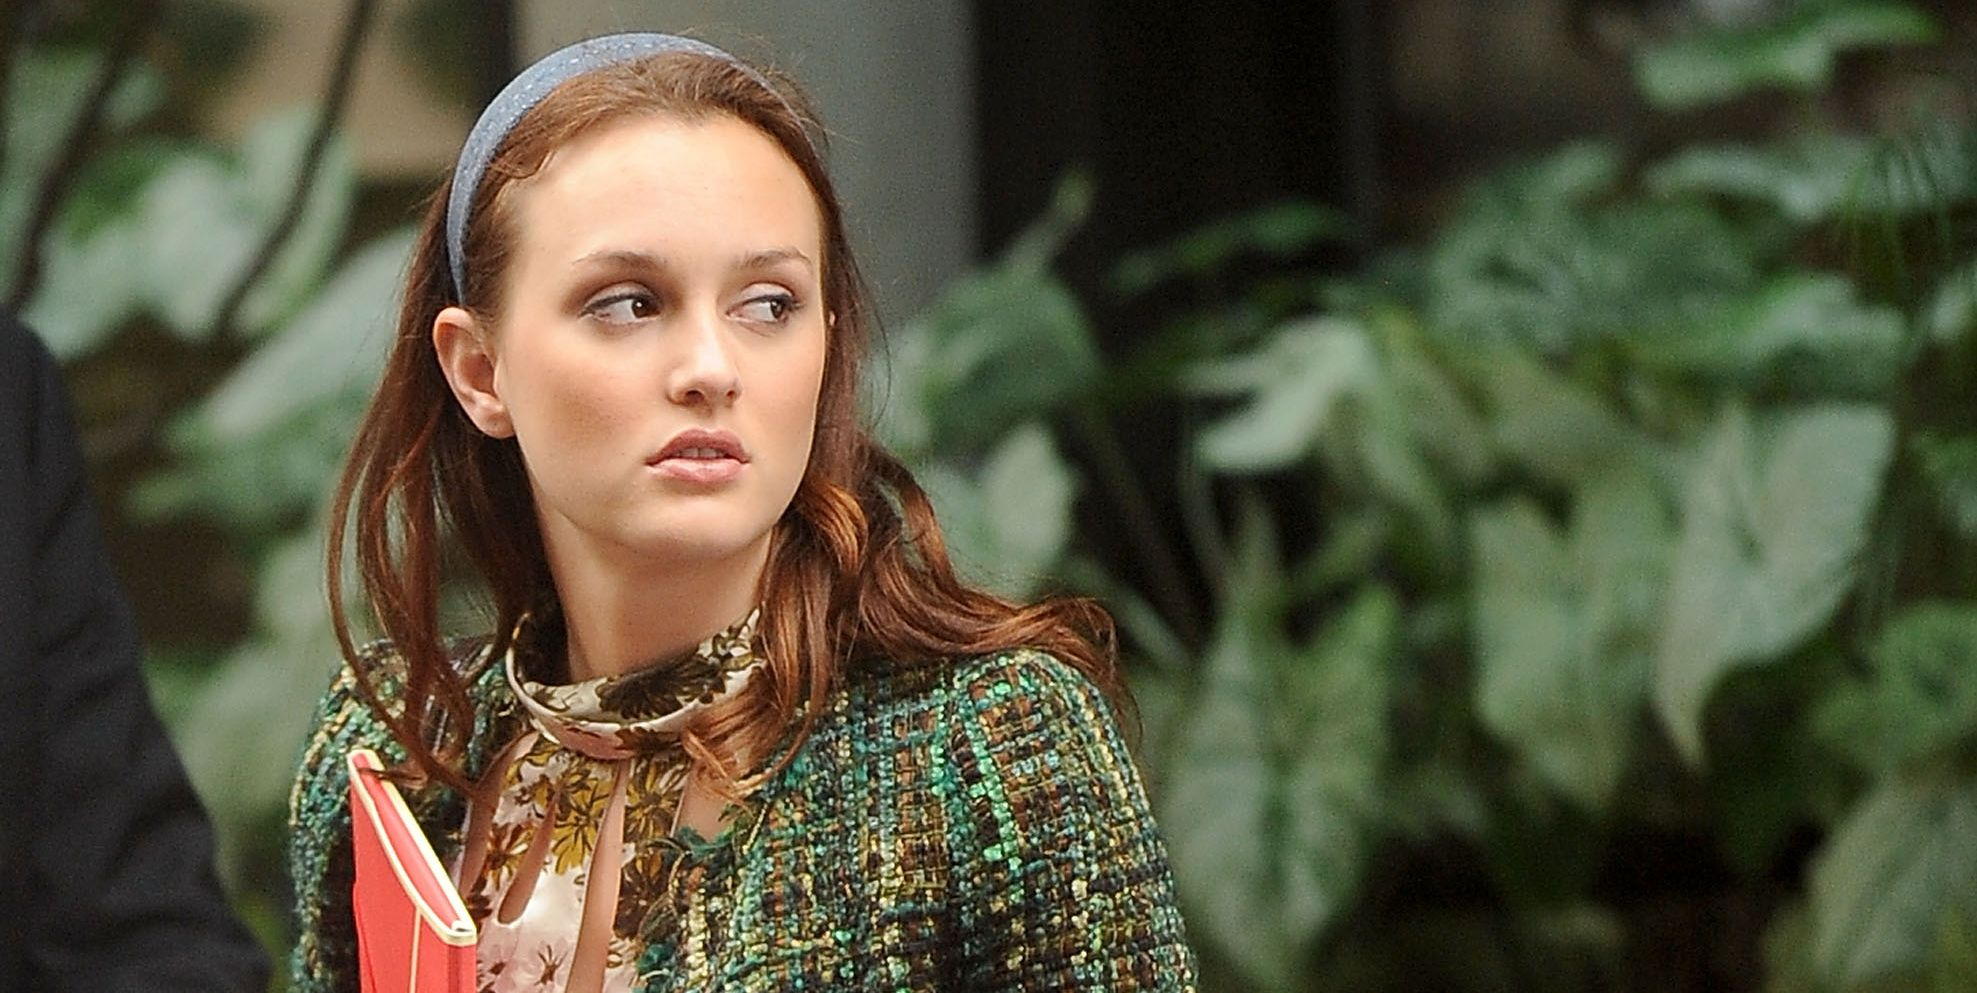 Leighton Meester Wouldn't Call the 'Gossip Girl' Set the 'Healthiest Environment'